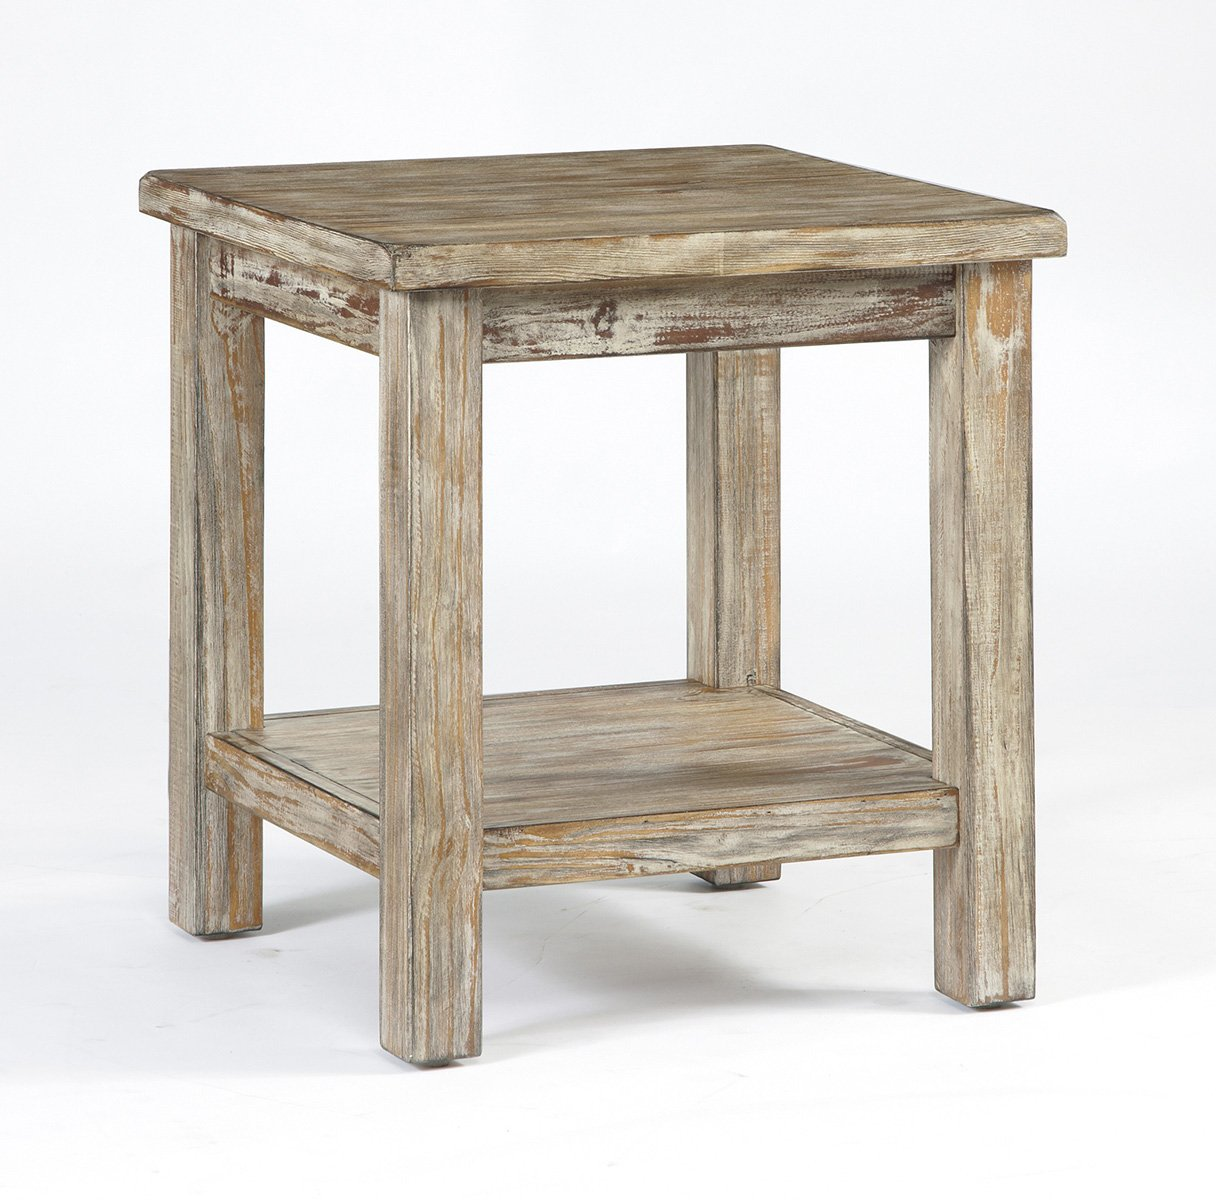 Ashley Furniture T500-302 Chair Side Vintage Rustic End Table 0